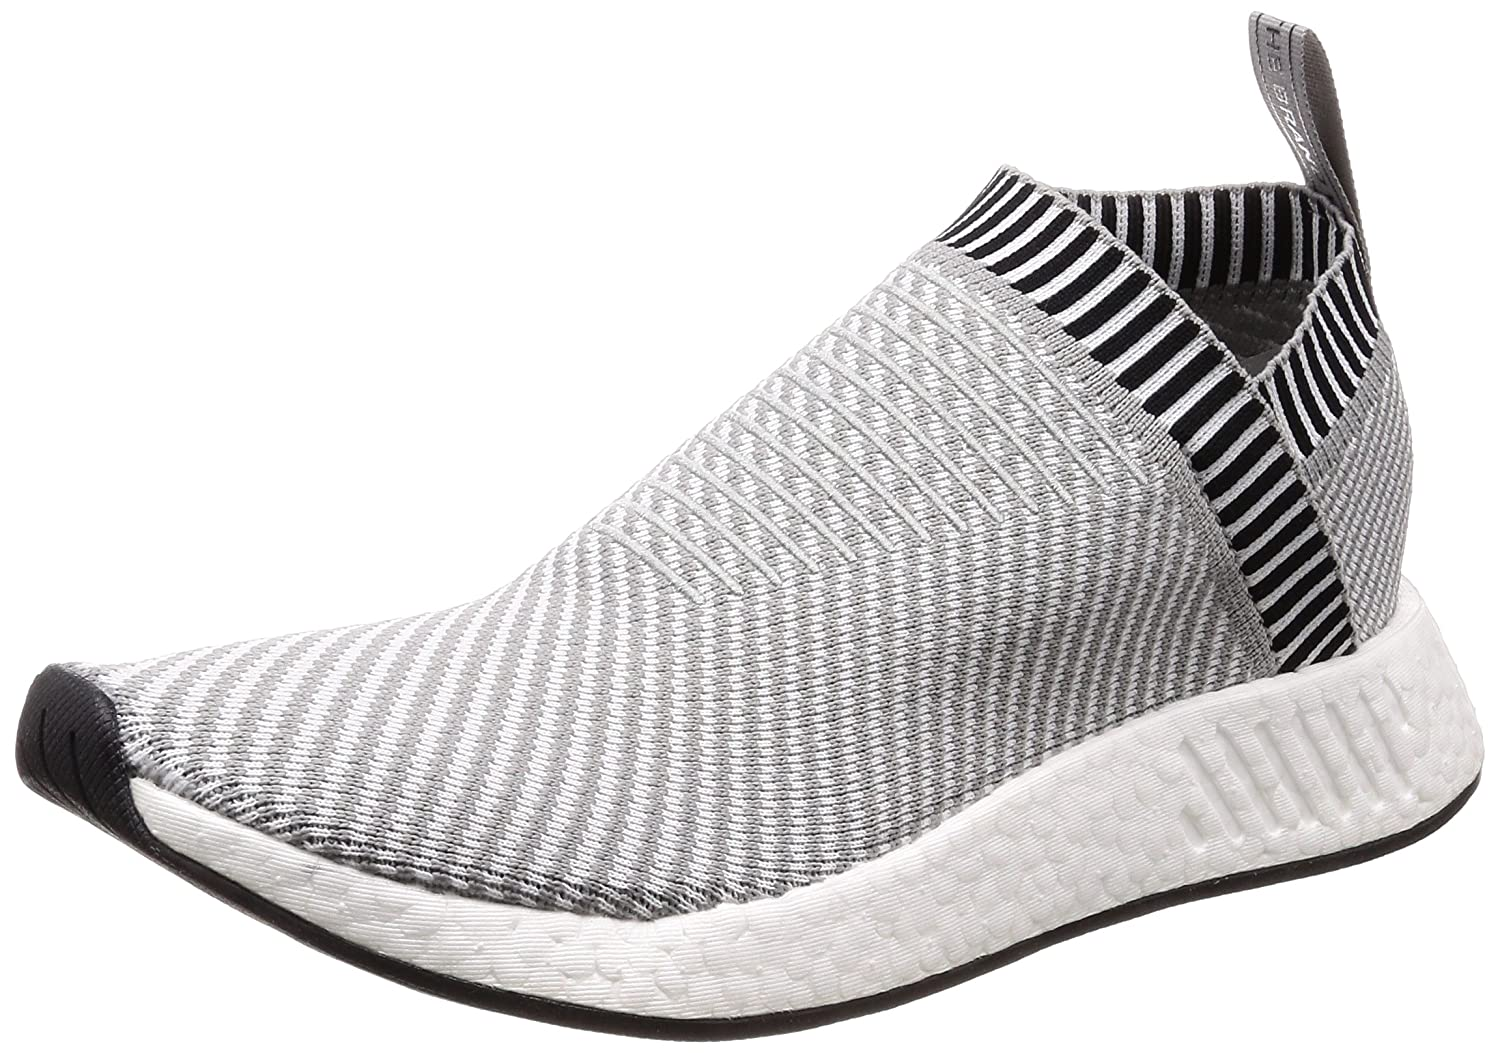 nmd city sock 2